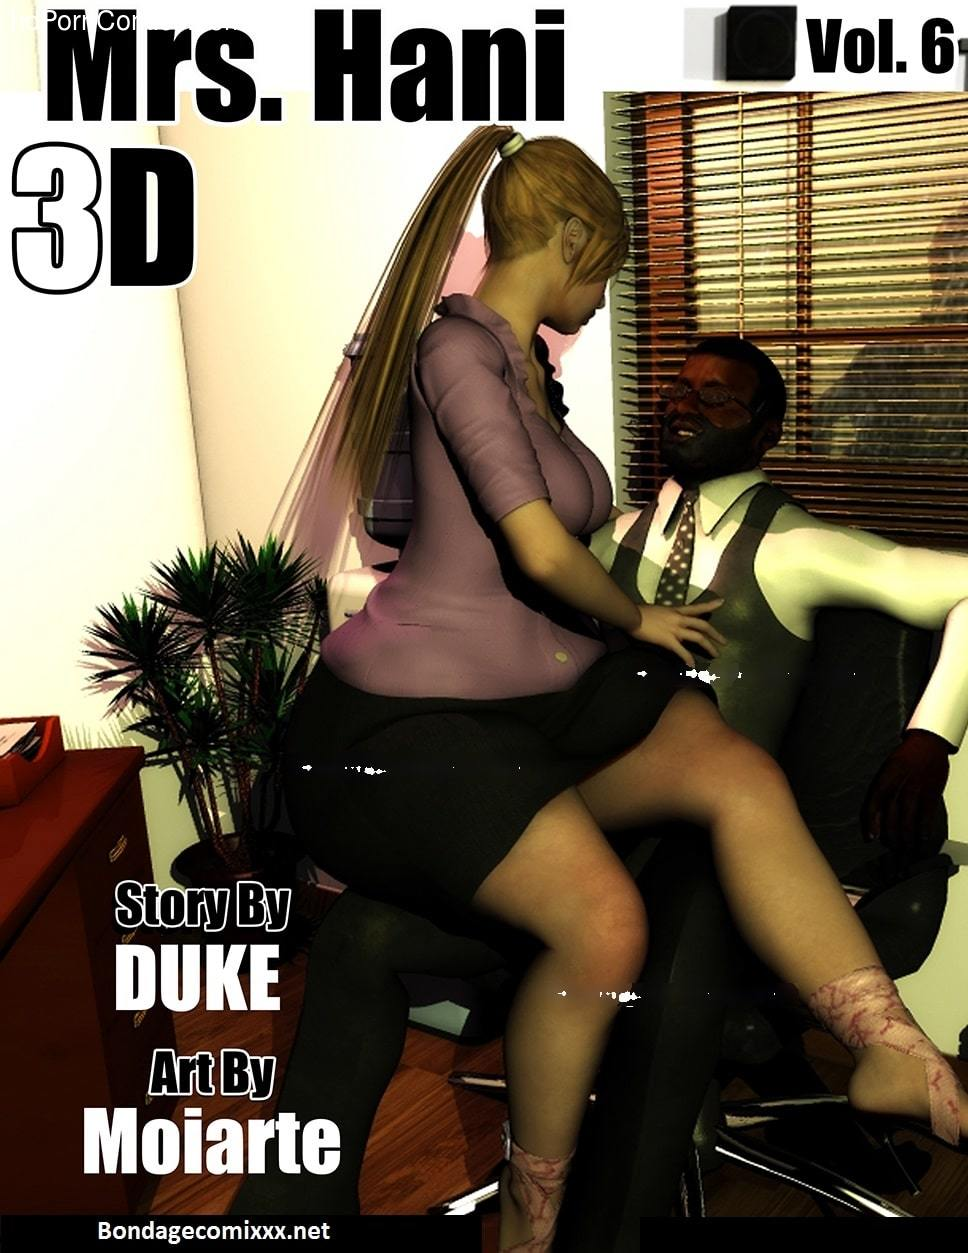 Dukehoney-Mrs Hani 3D 62 free sex comic